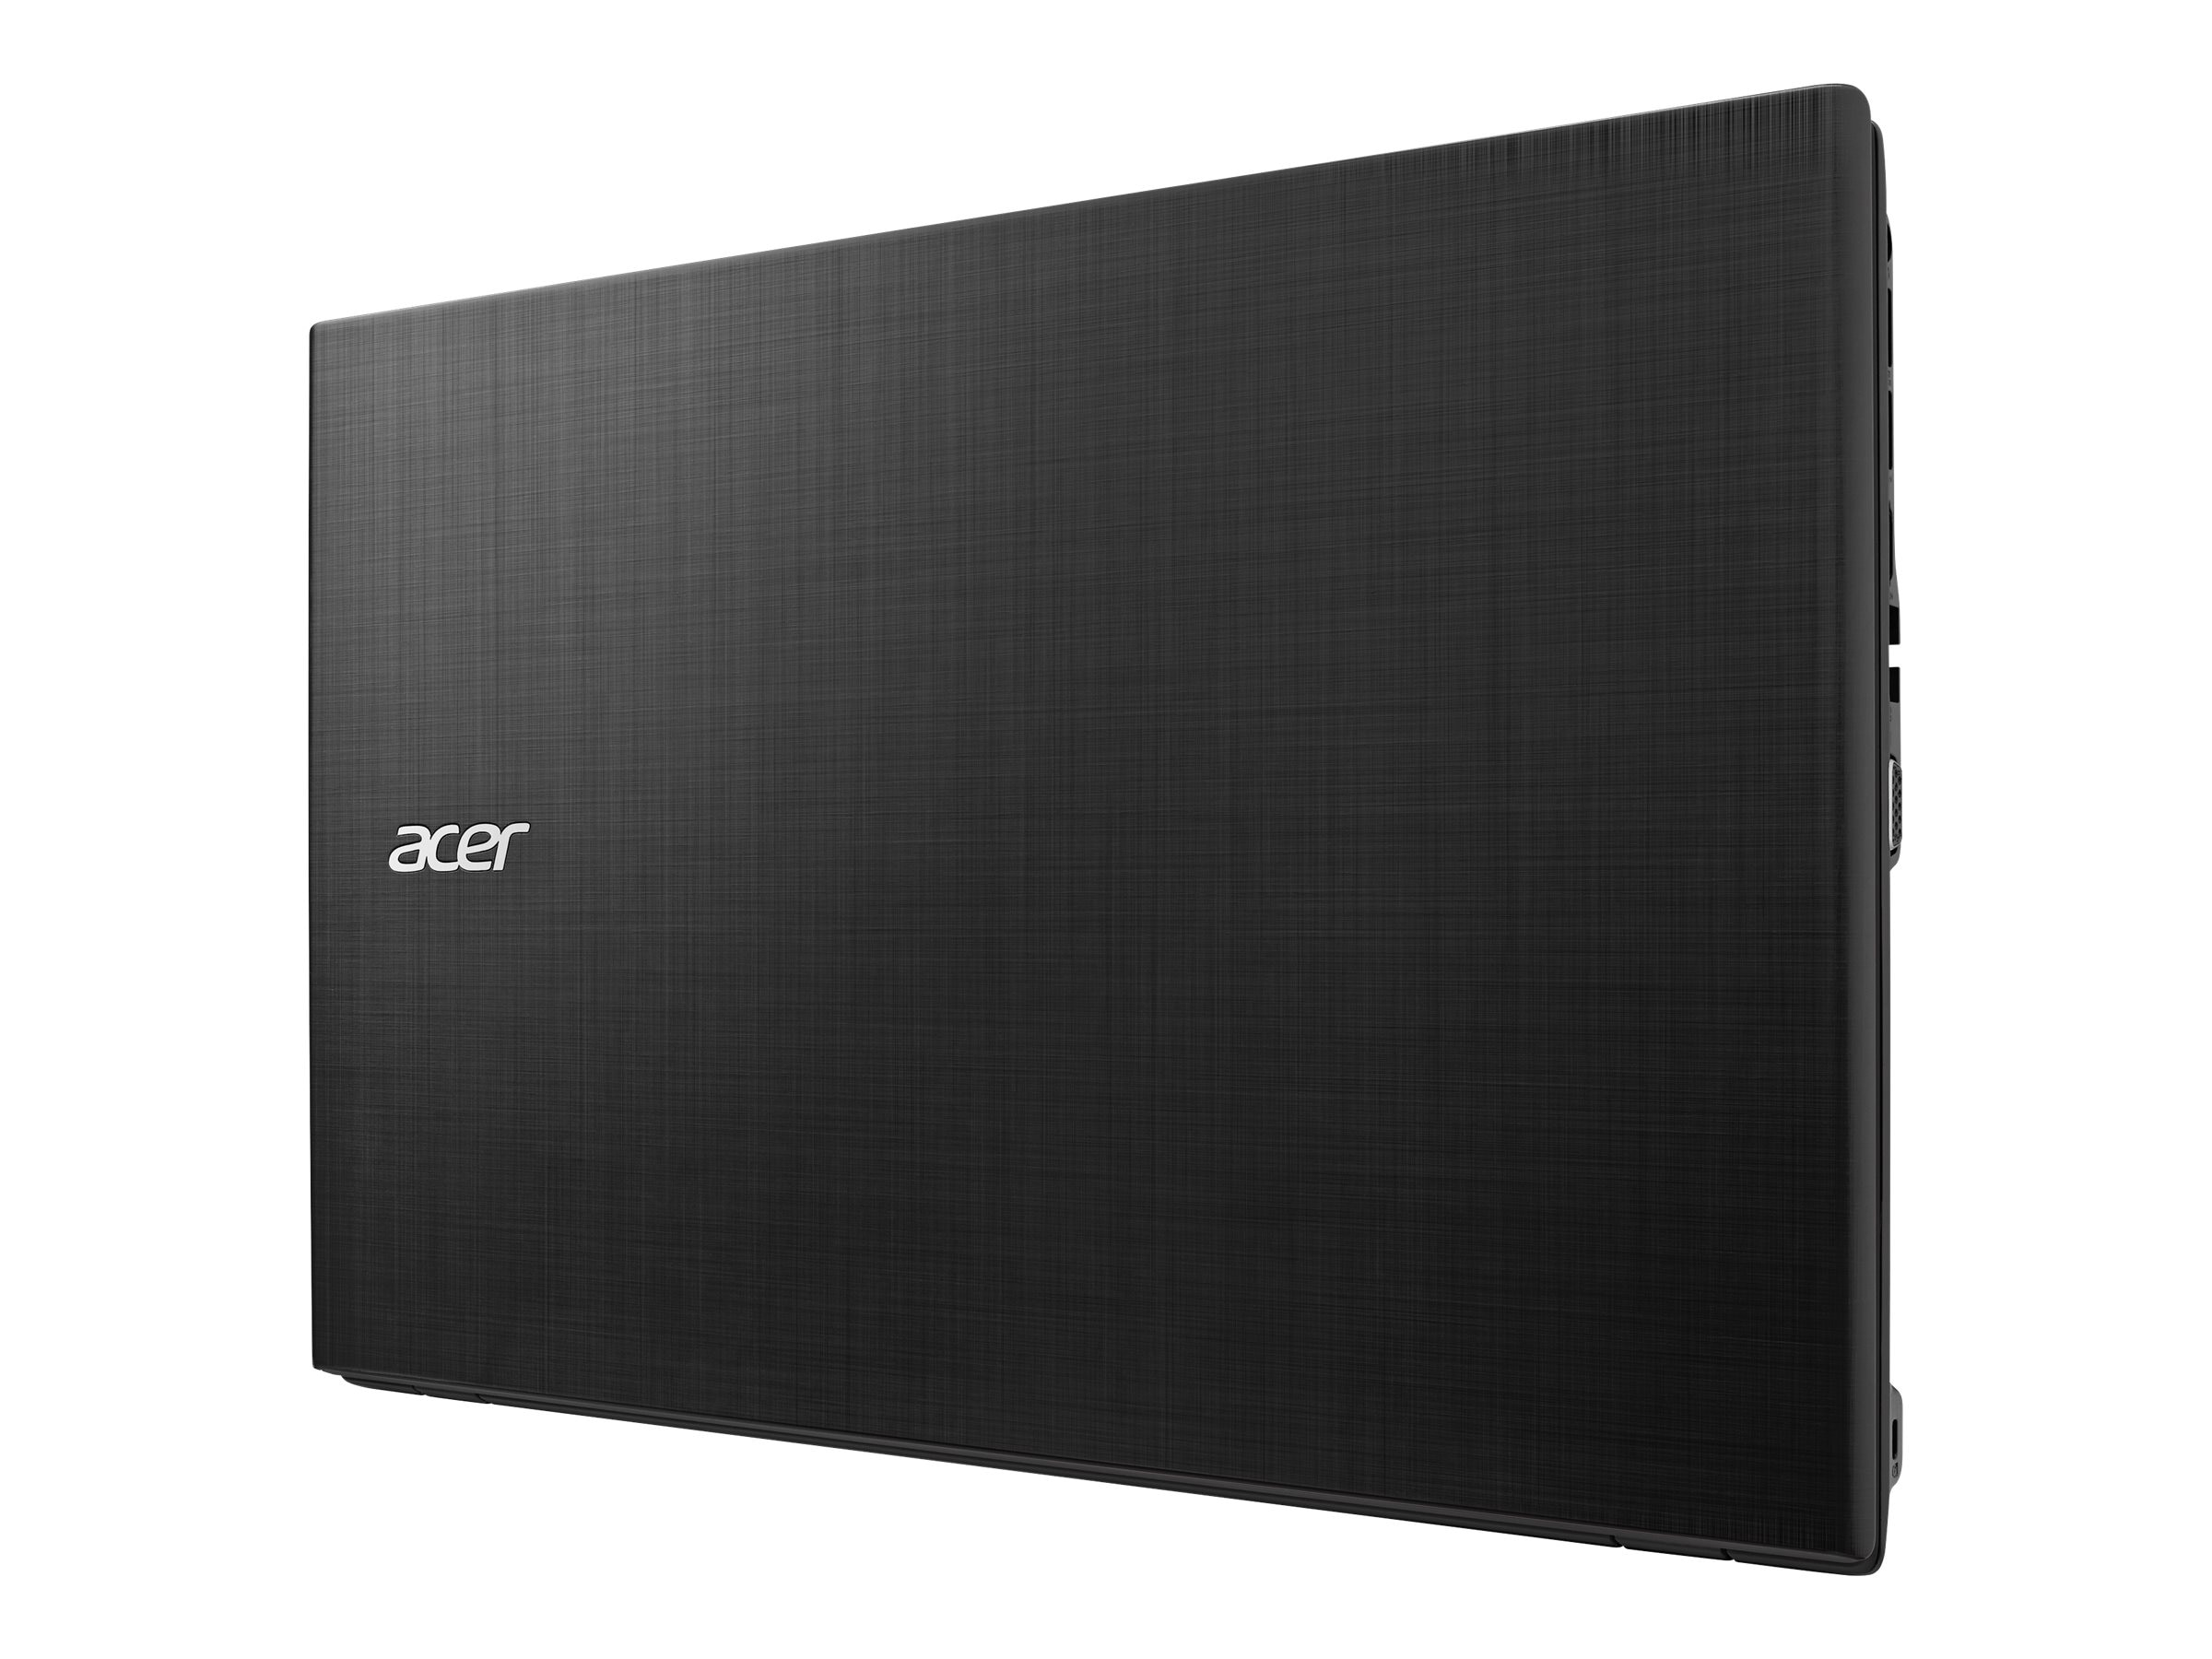 Acer Aspire F5-571-50PF Core i5-4210U 1.7GHz 8GB 1TB DVD SM ac BT WC 4C 15.6 HD W10H64, NX.G9ZAA.002